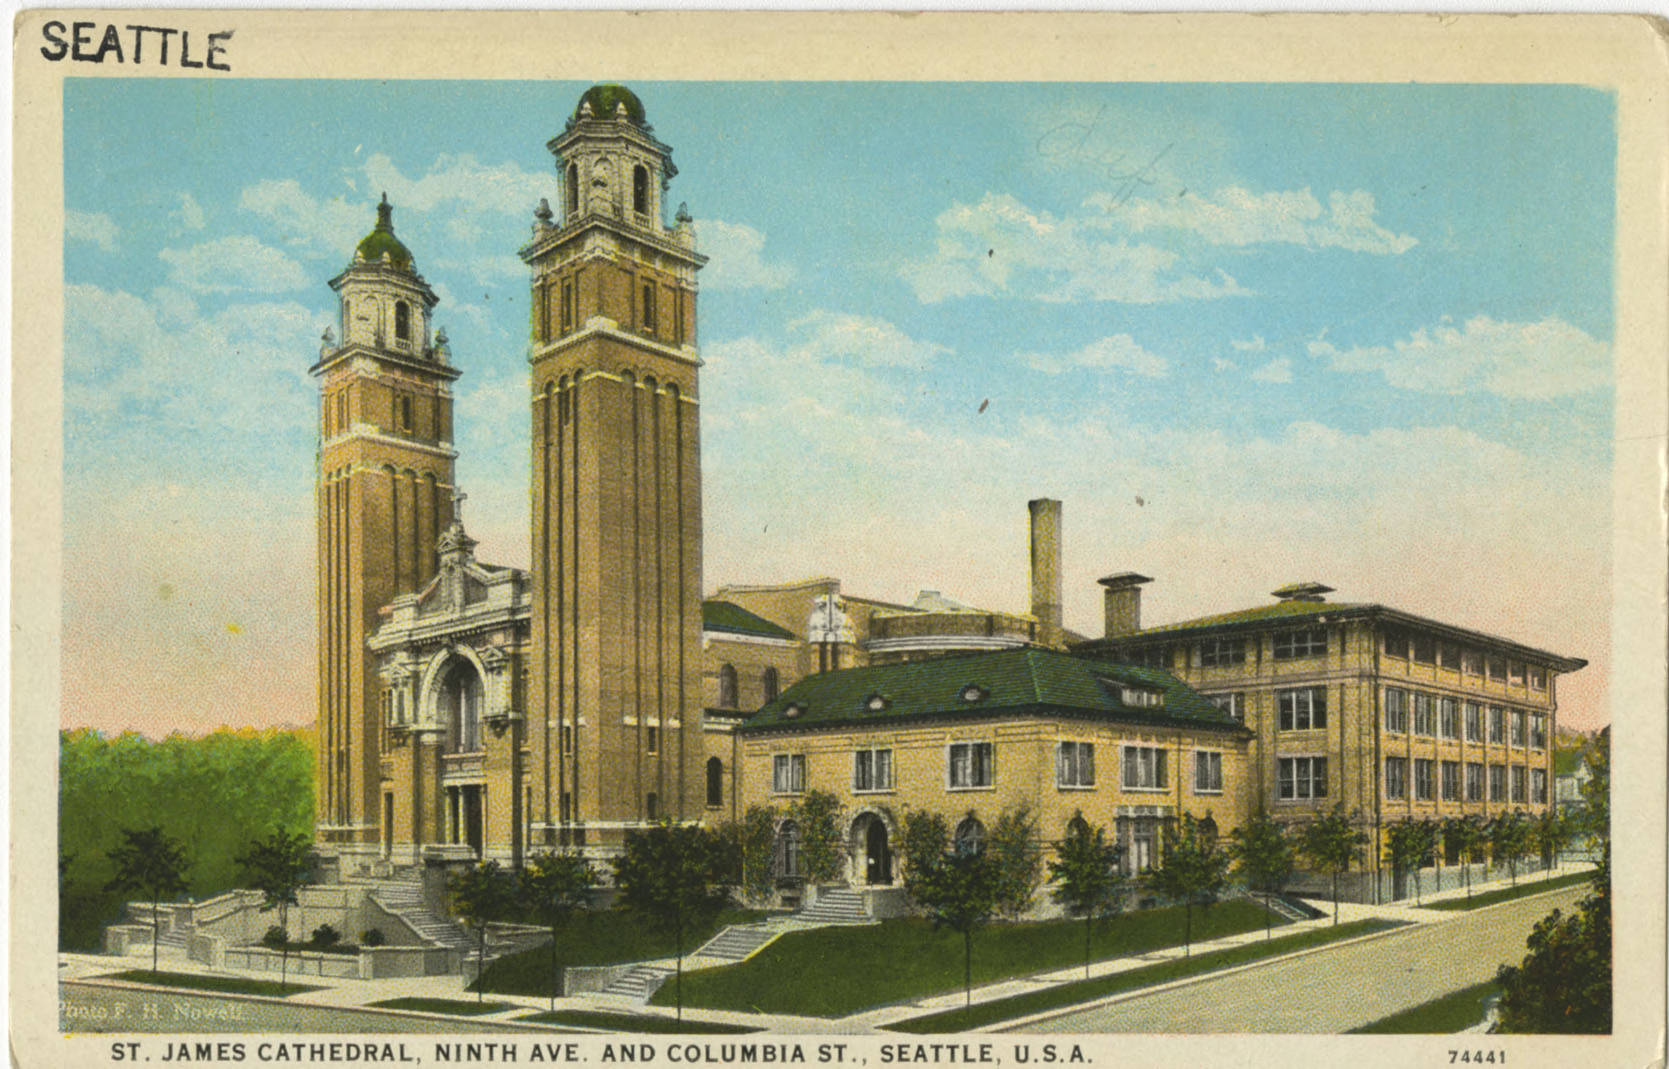 St. James Cathedral, ca. 1915